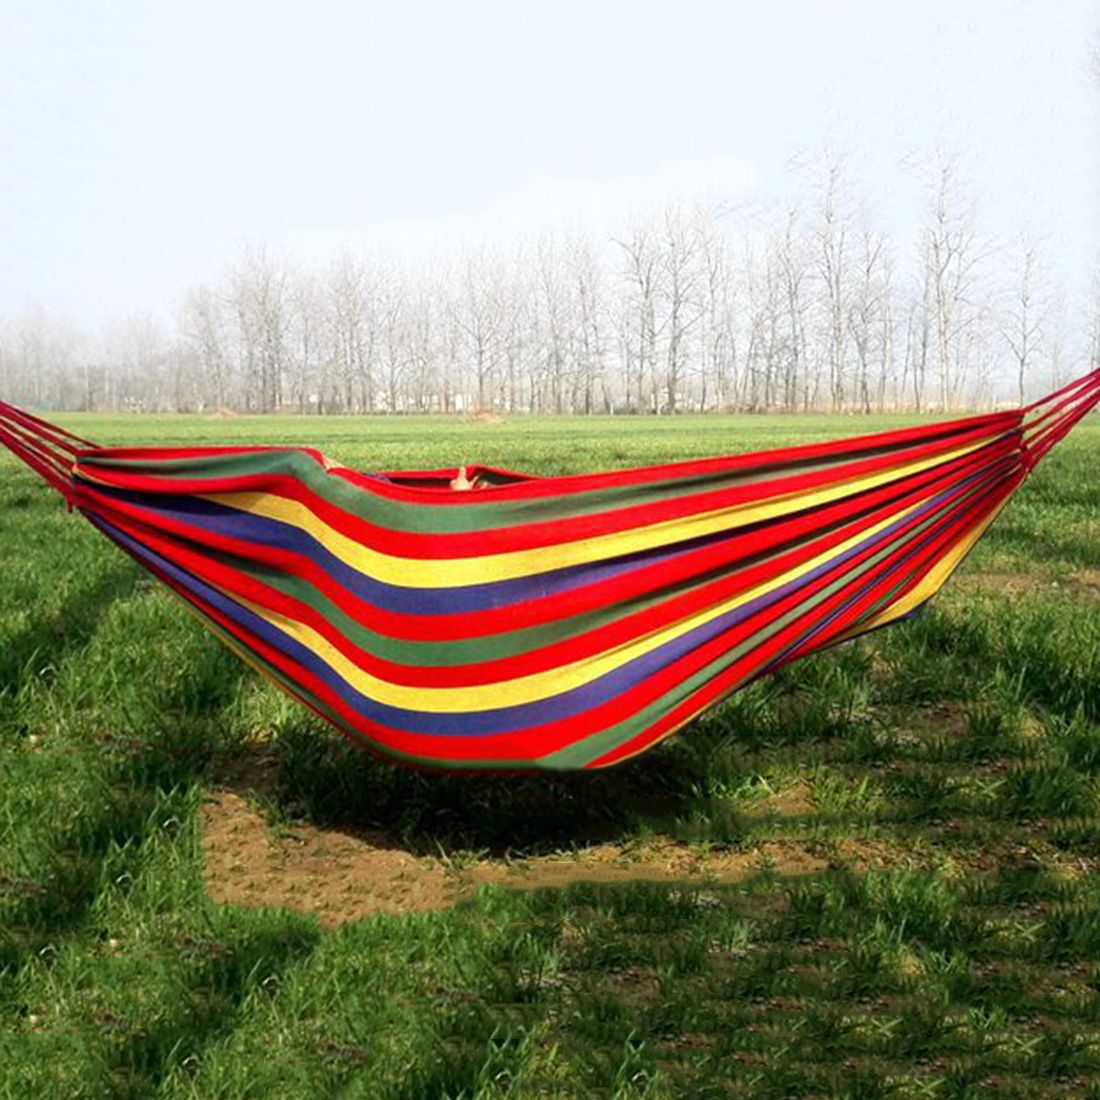 Outdoors Portable Camping Parachute Sleeping Double Hammock Garden Swing Hammock Hanging Bed Travel Camping Swing Canvas Stripe Camp Sleeping Gear